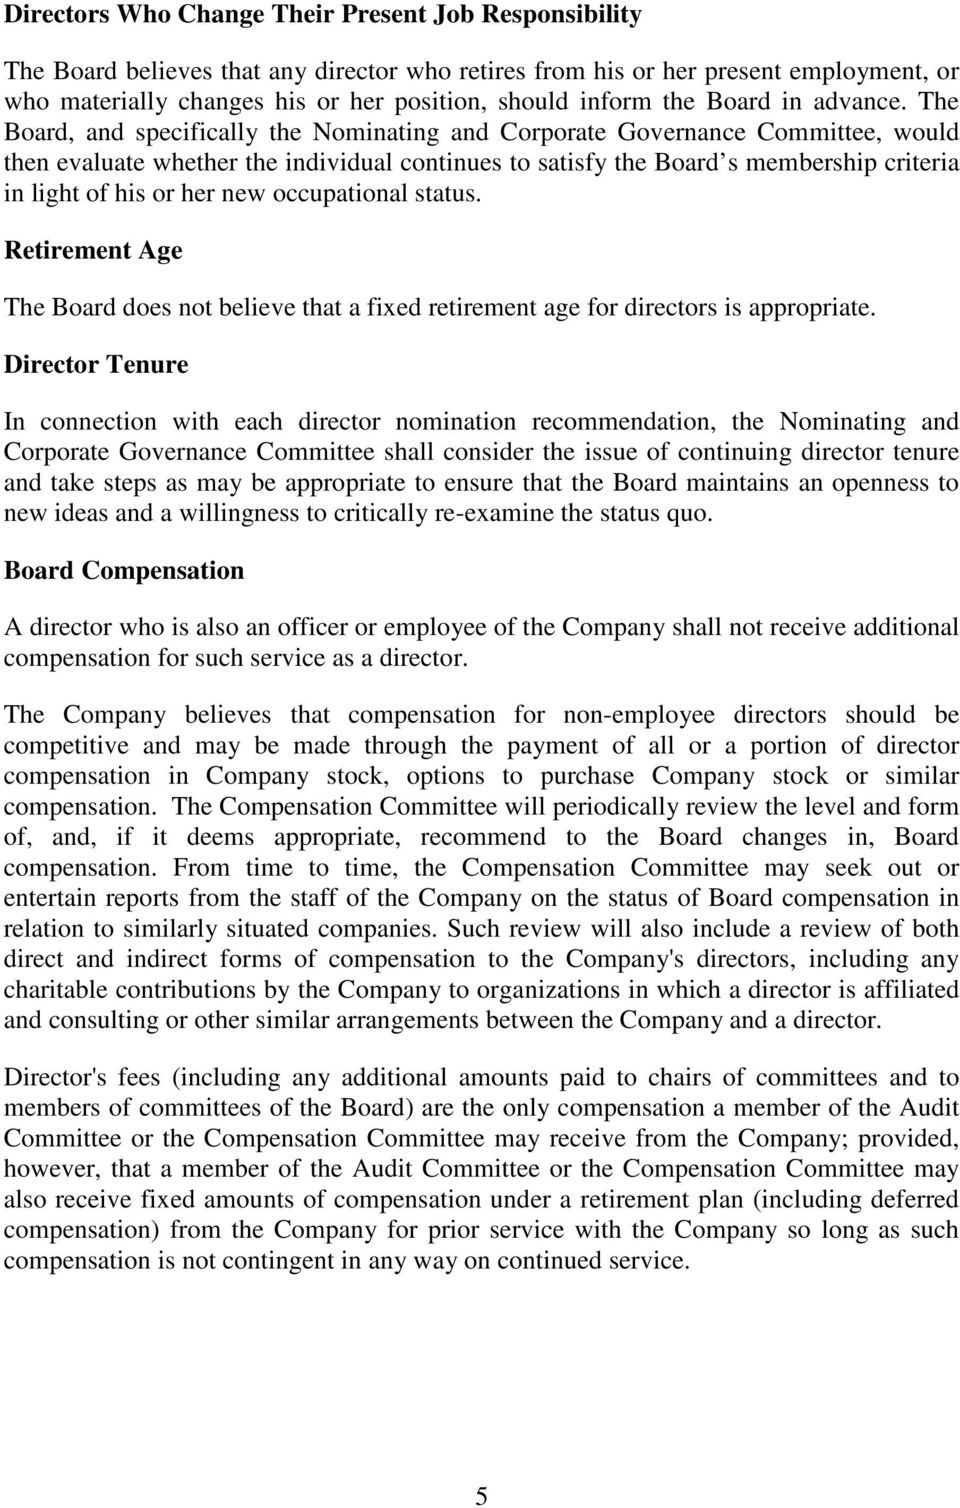 The Board, and specifically the Nominating and Corporate Governance Committee, would then evaluate whether the individual continues to satisfy the Board s membership criteria in light of his or her